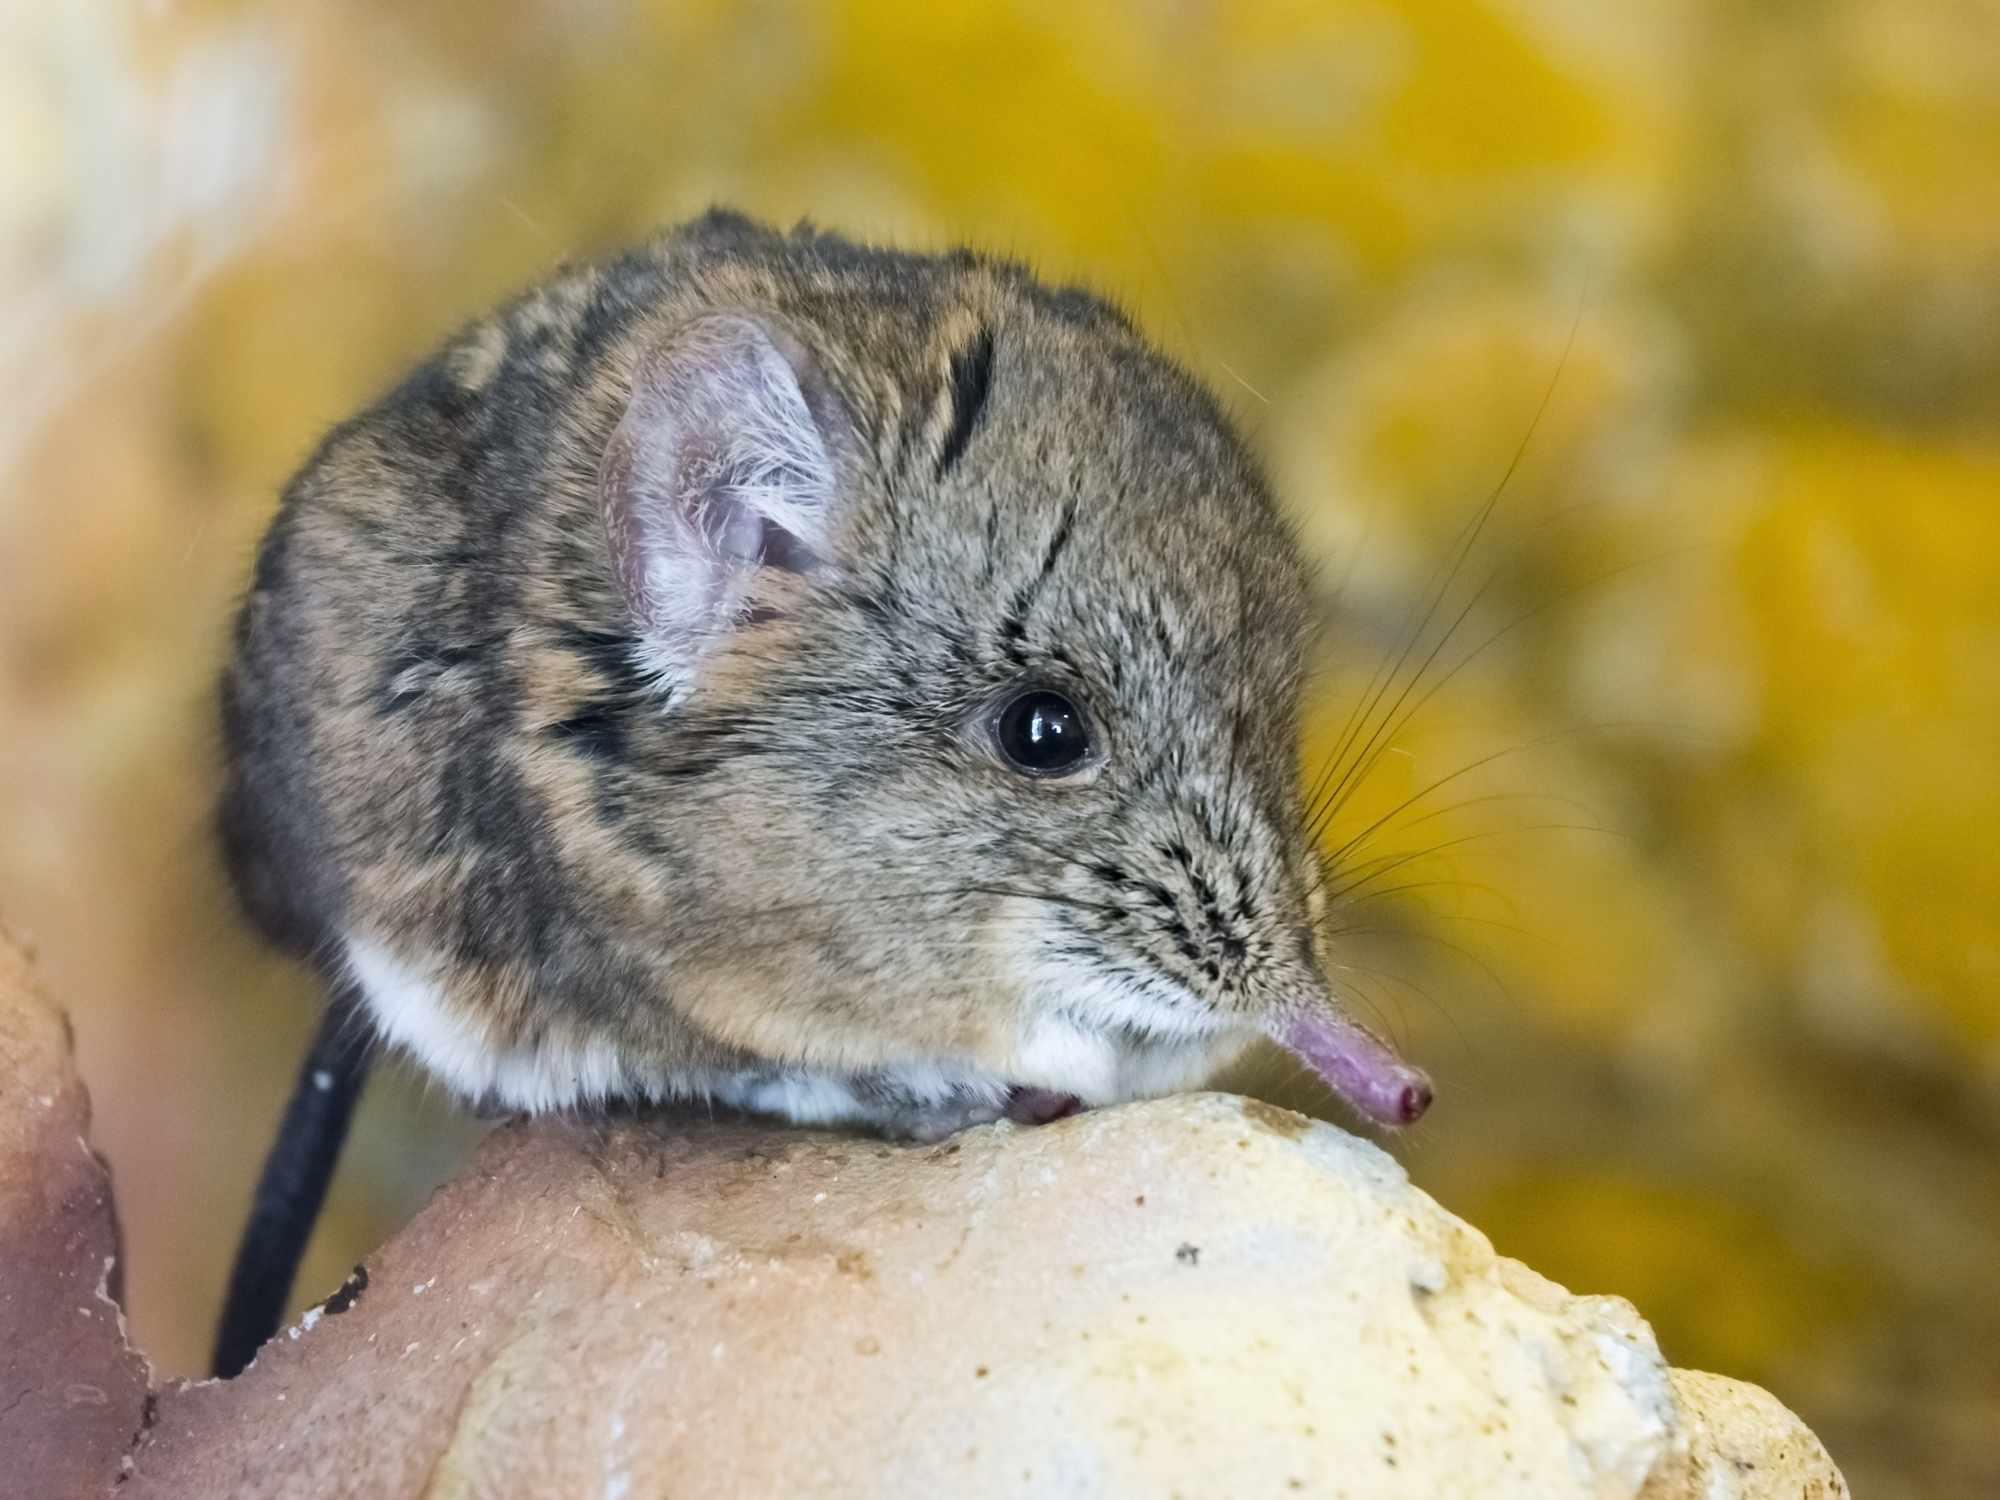 cute brown elephant shrew with long nose sits on rock